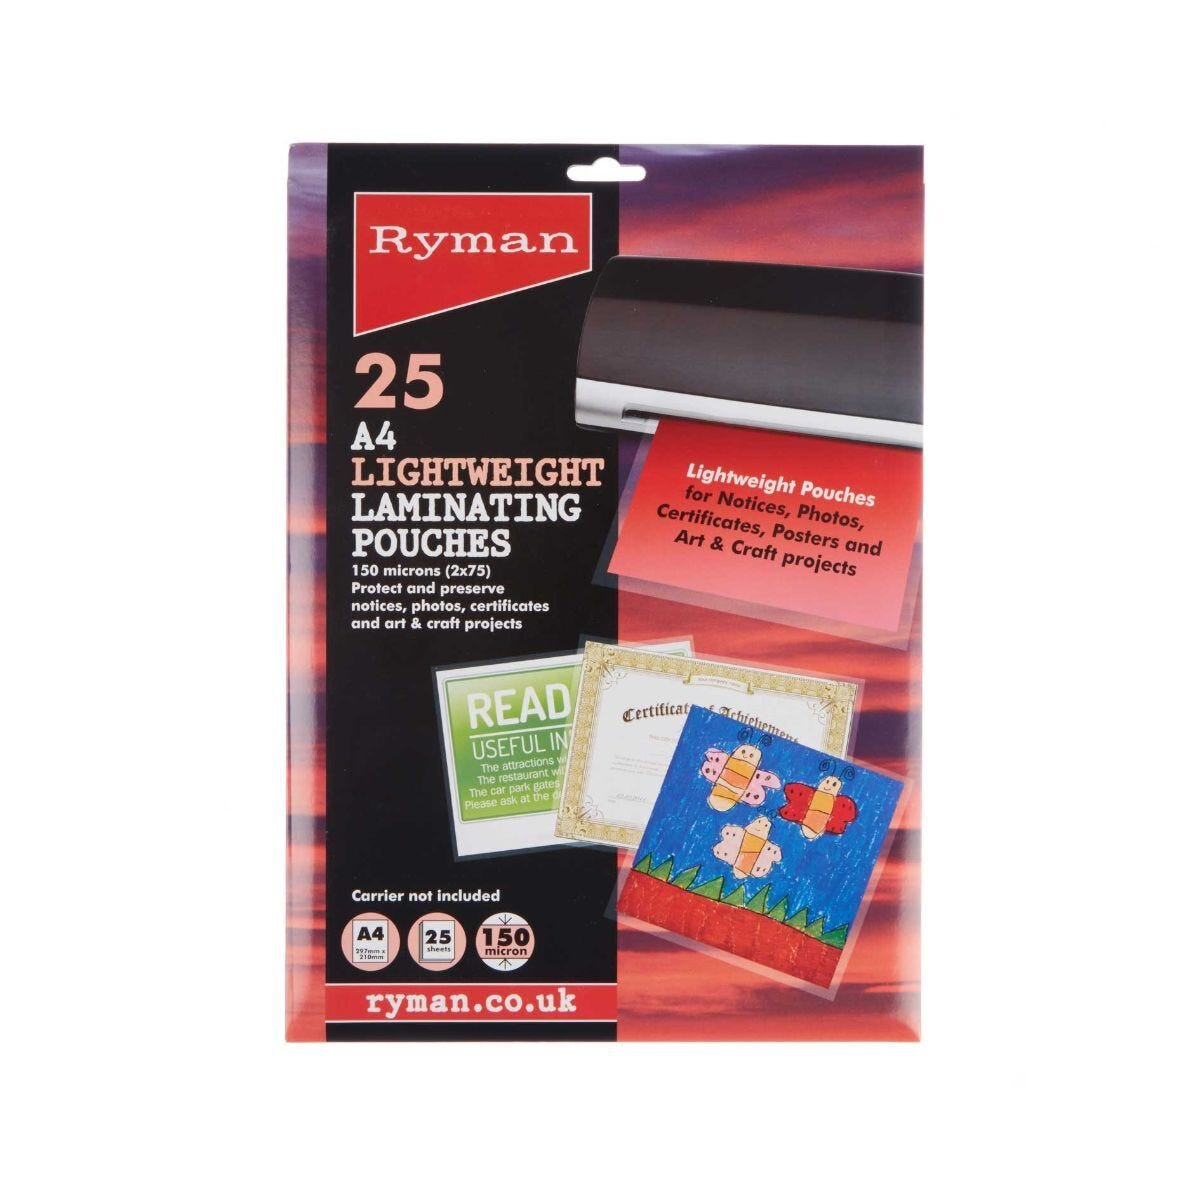 Ryman Laminating Pouches A4 150 Micron Pack of 25